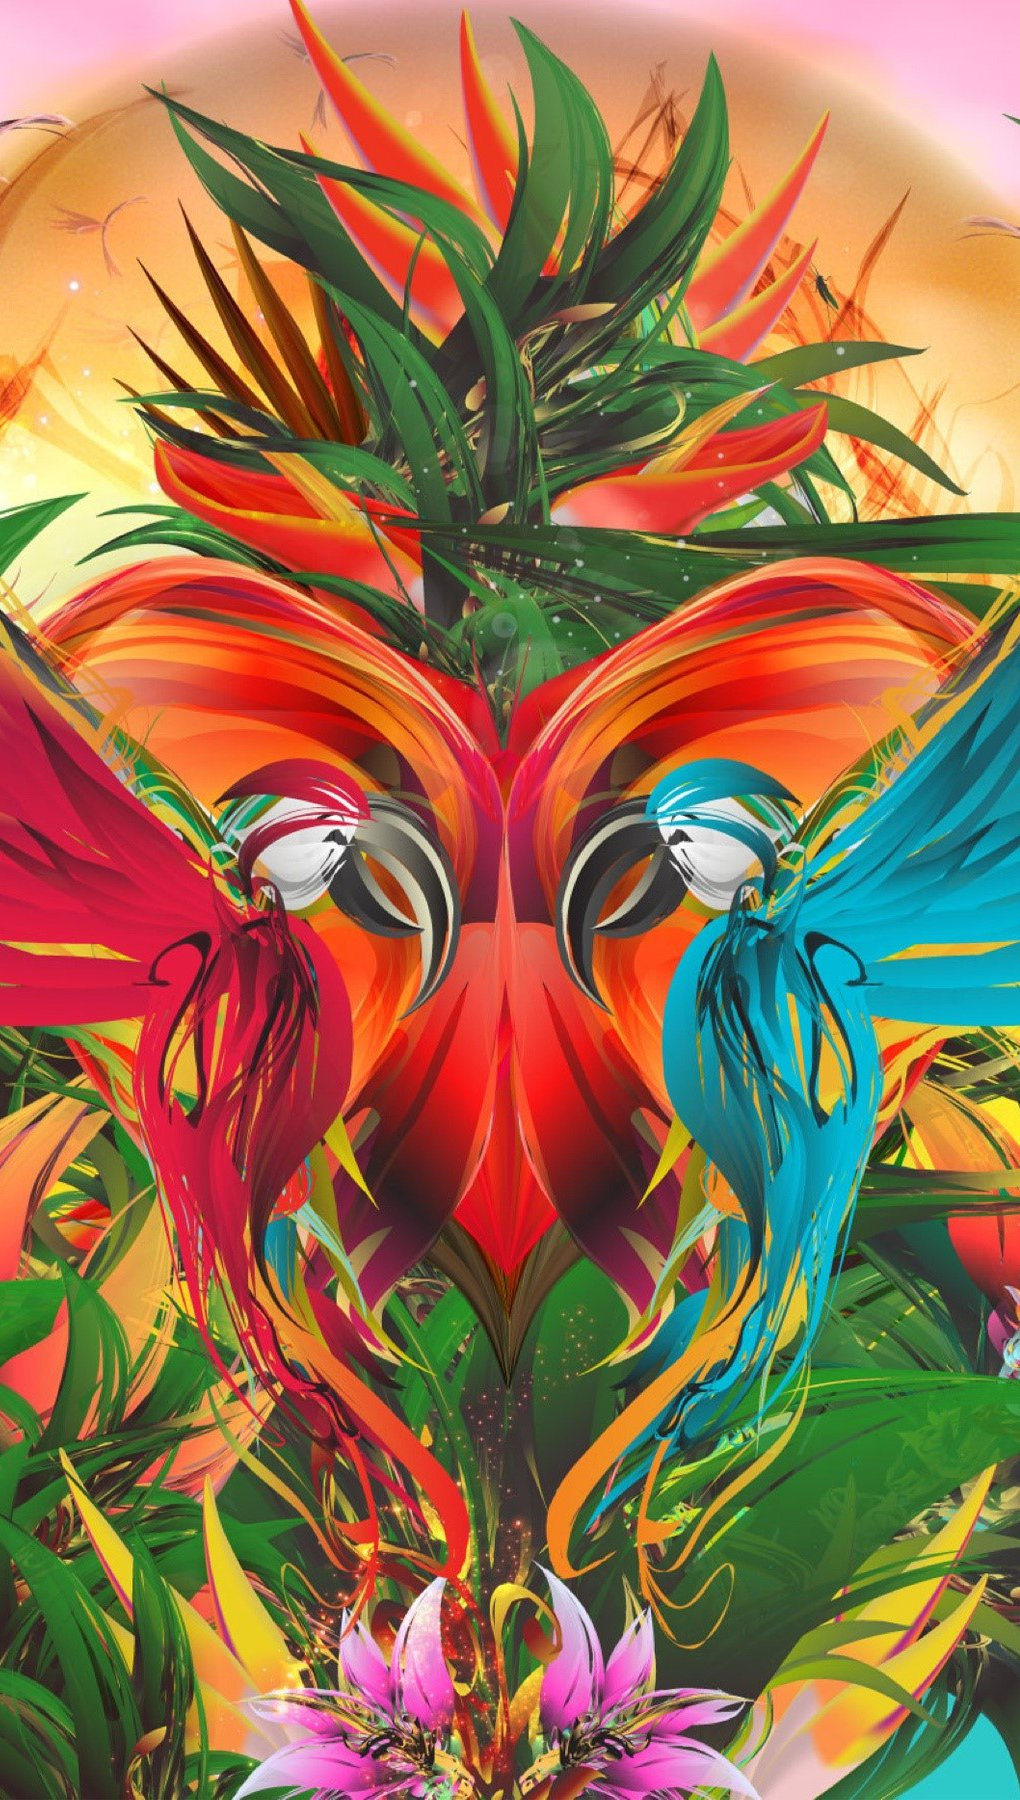 Wallpaper Parrots in a colorful garden Vertical